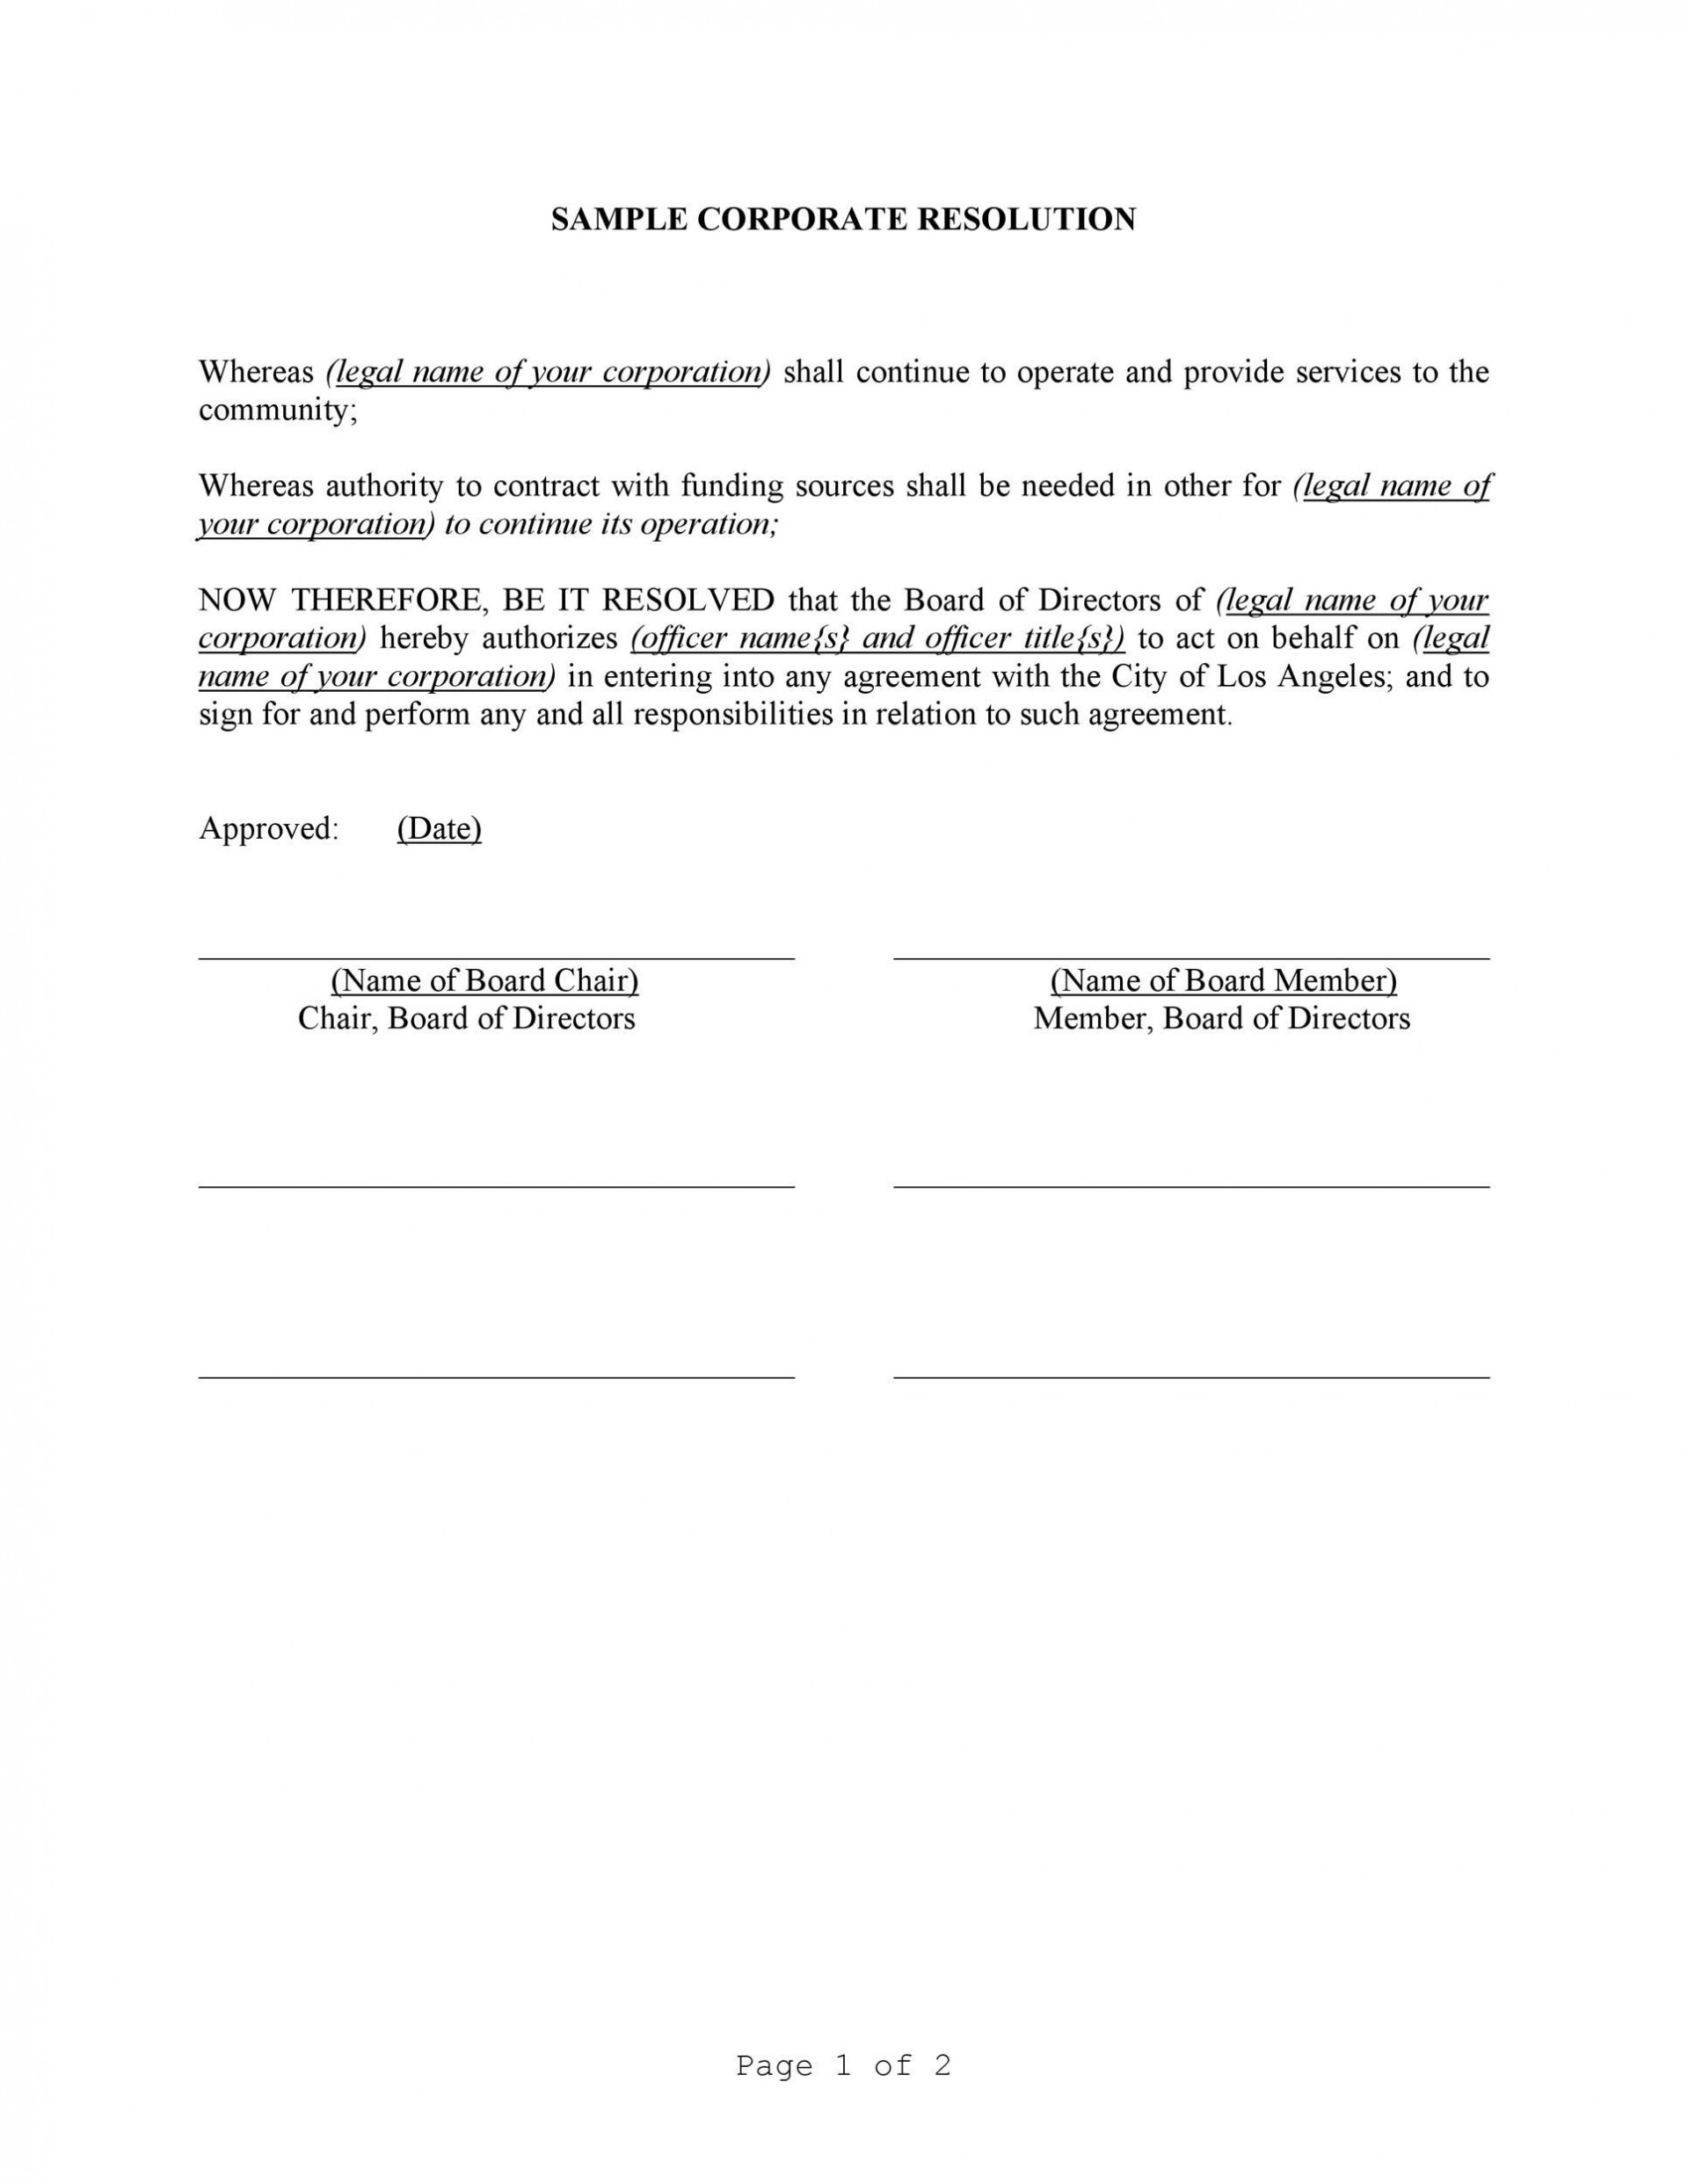 007 Amazing Corporate Resolution Template Microsoft Word High  Free1920